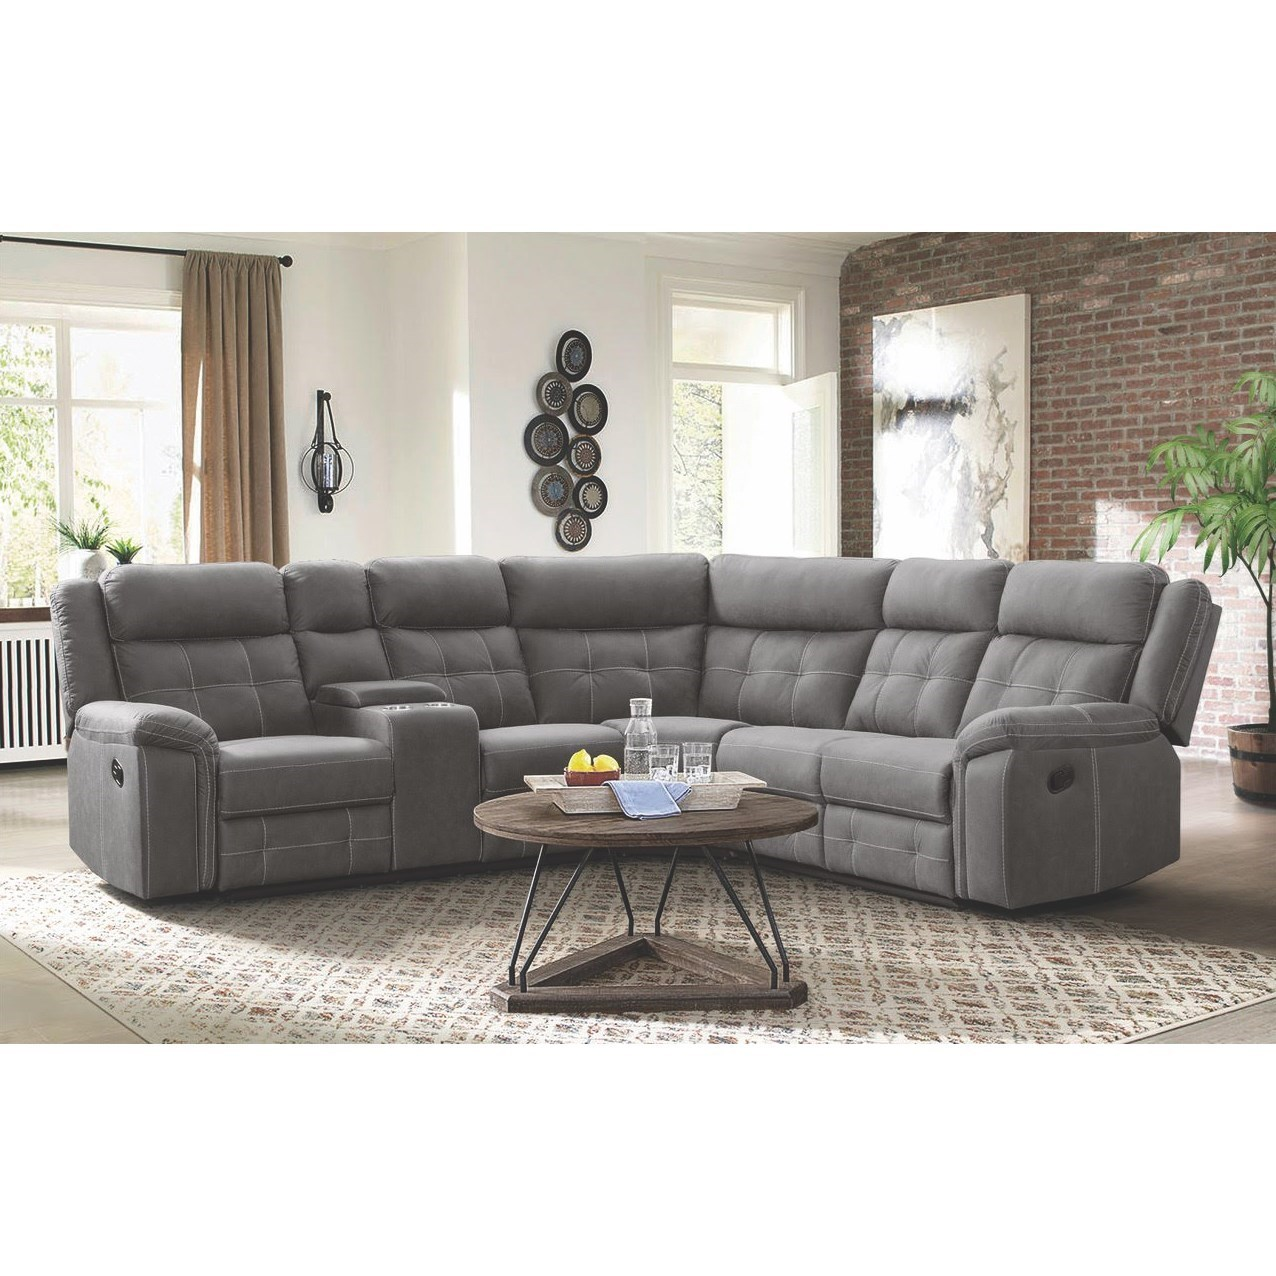 59933 reclining sectional